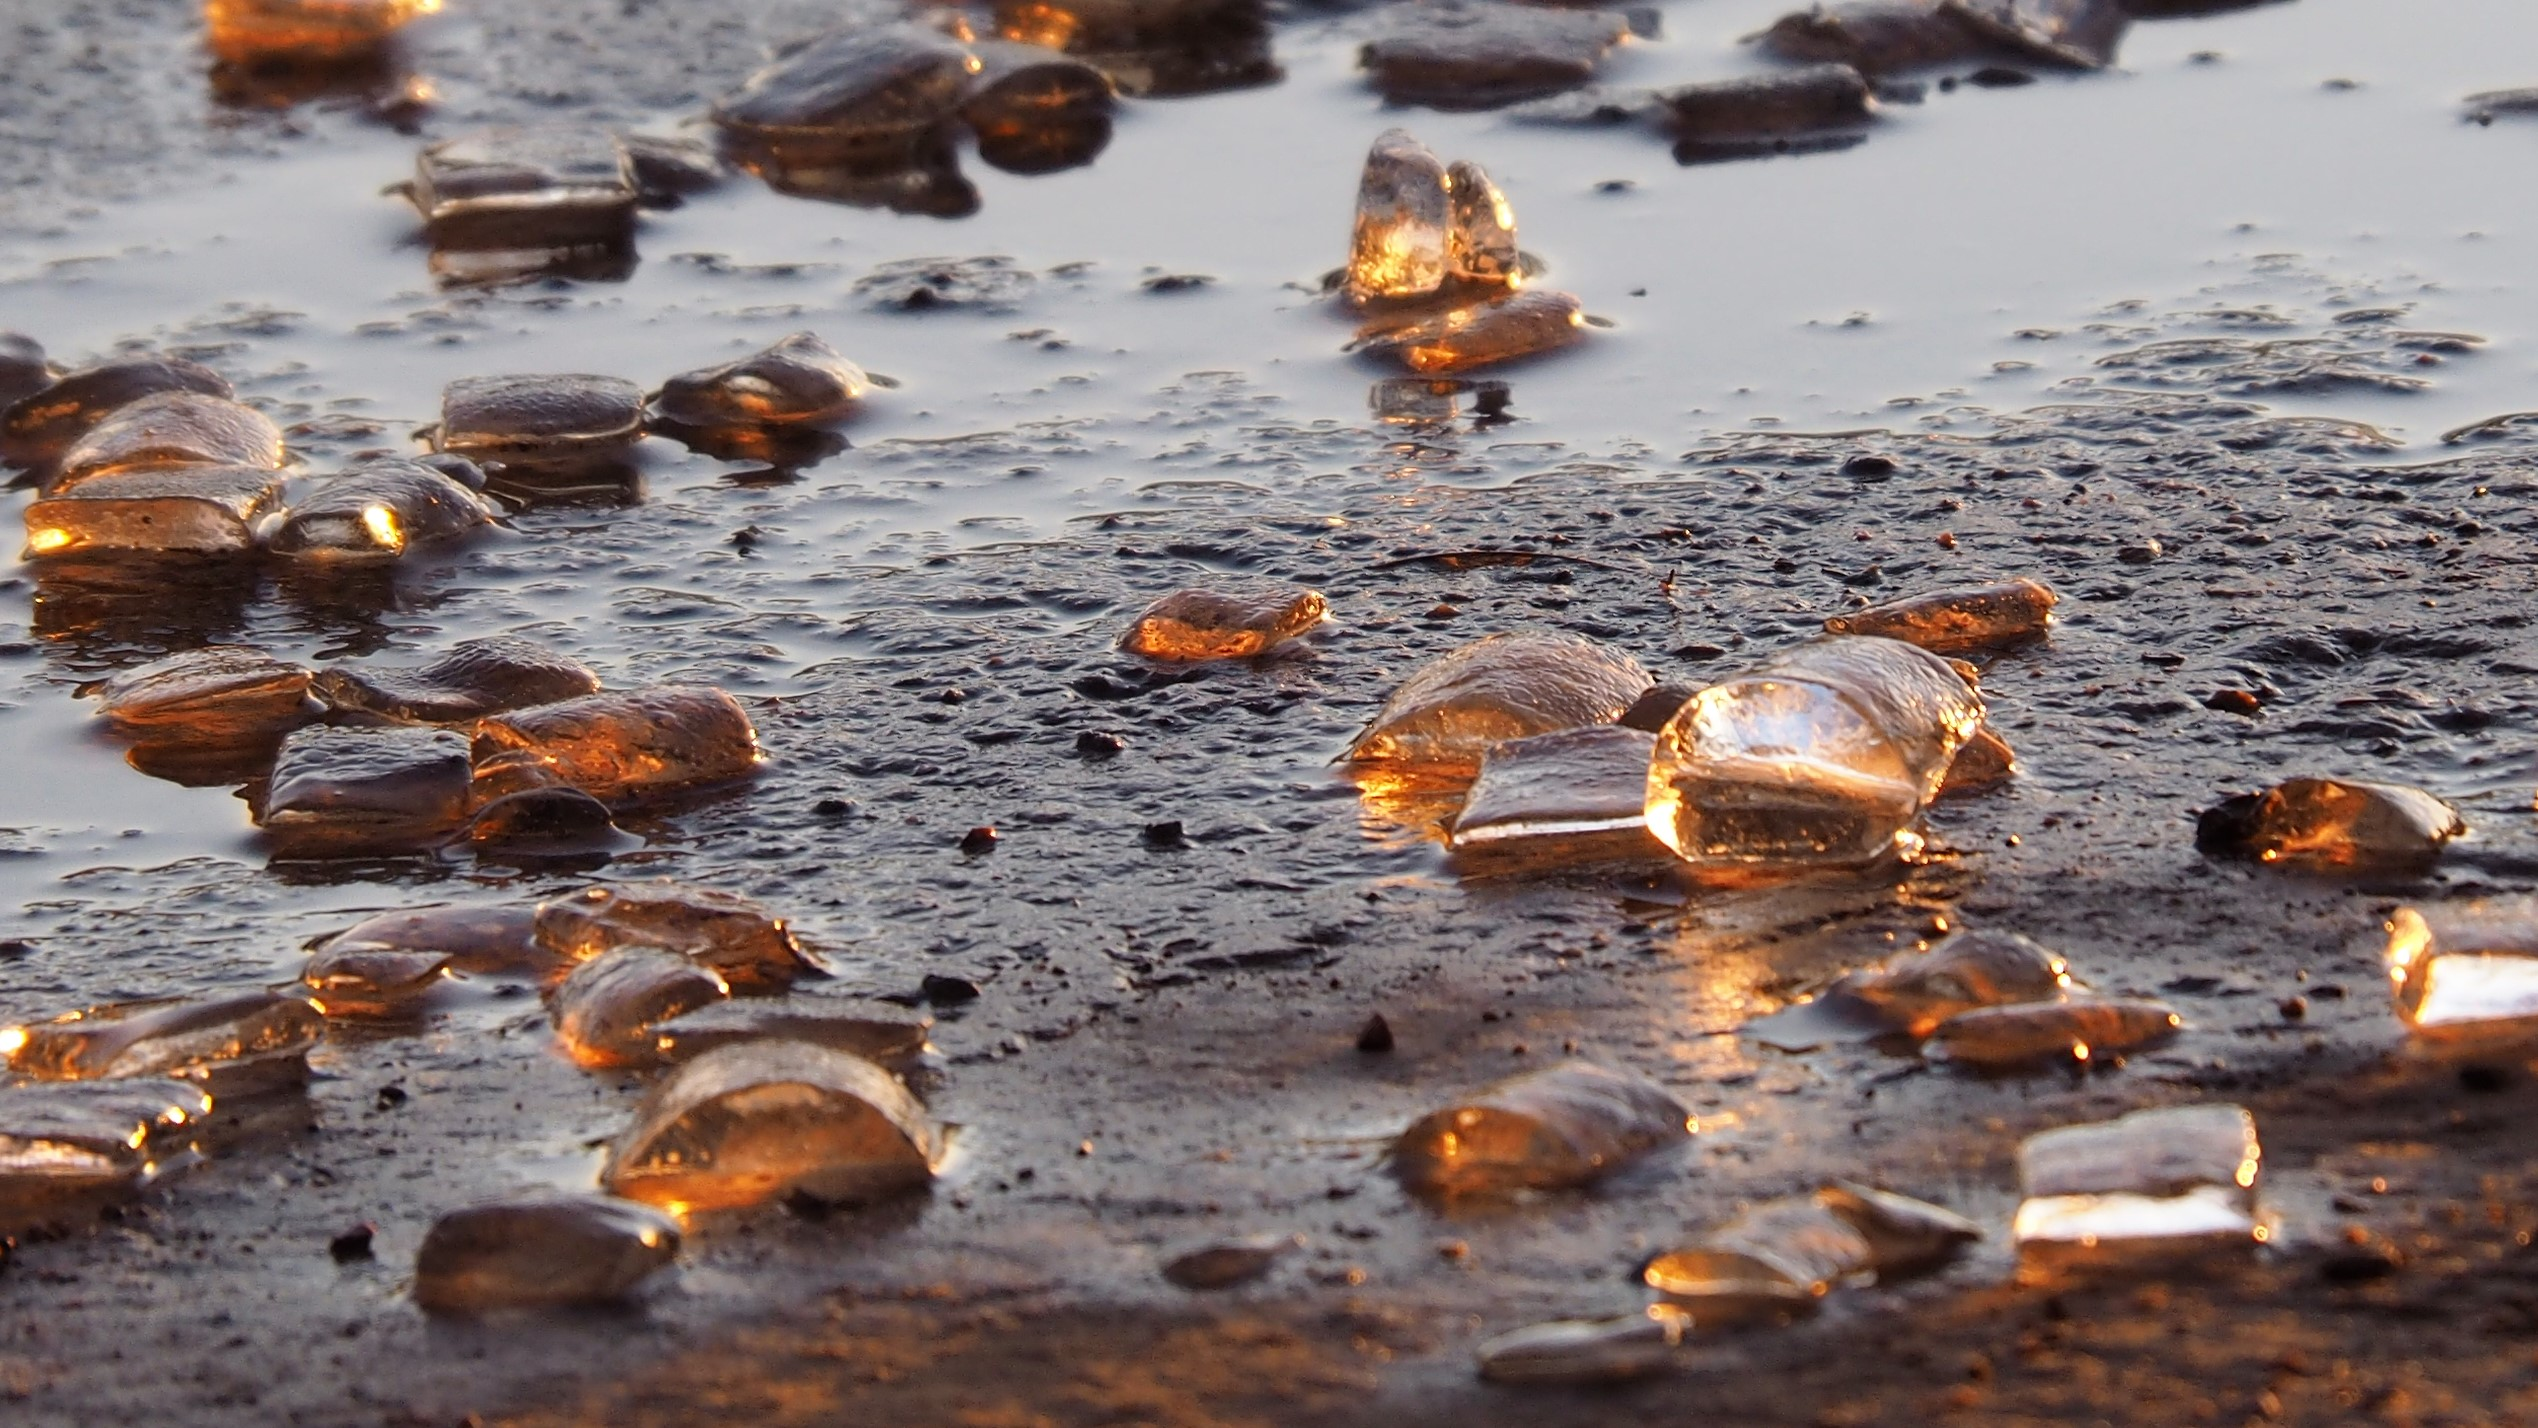 Ice cubes melting on ground and backlit by late-afternoon light.